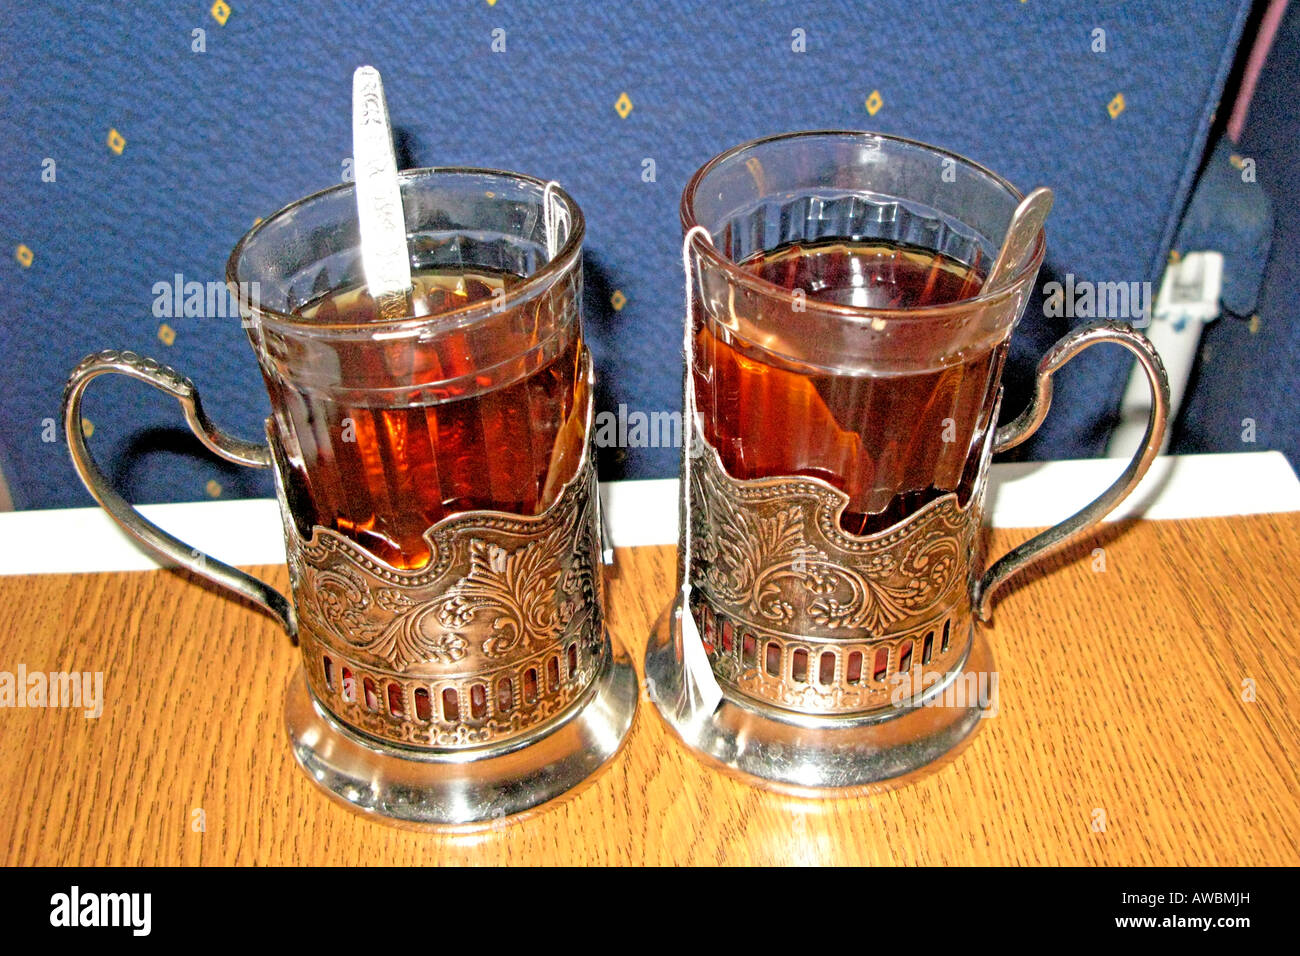 Russia, Decorated Cups For Tea On Train Stock Photo: 16530520 - Alamy